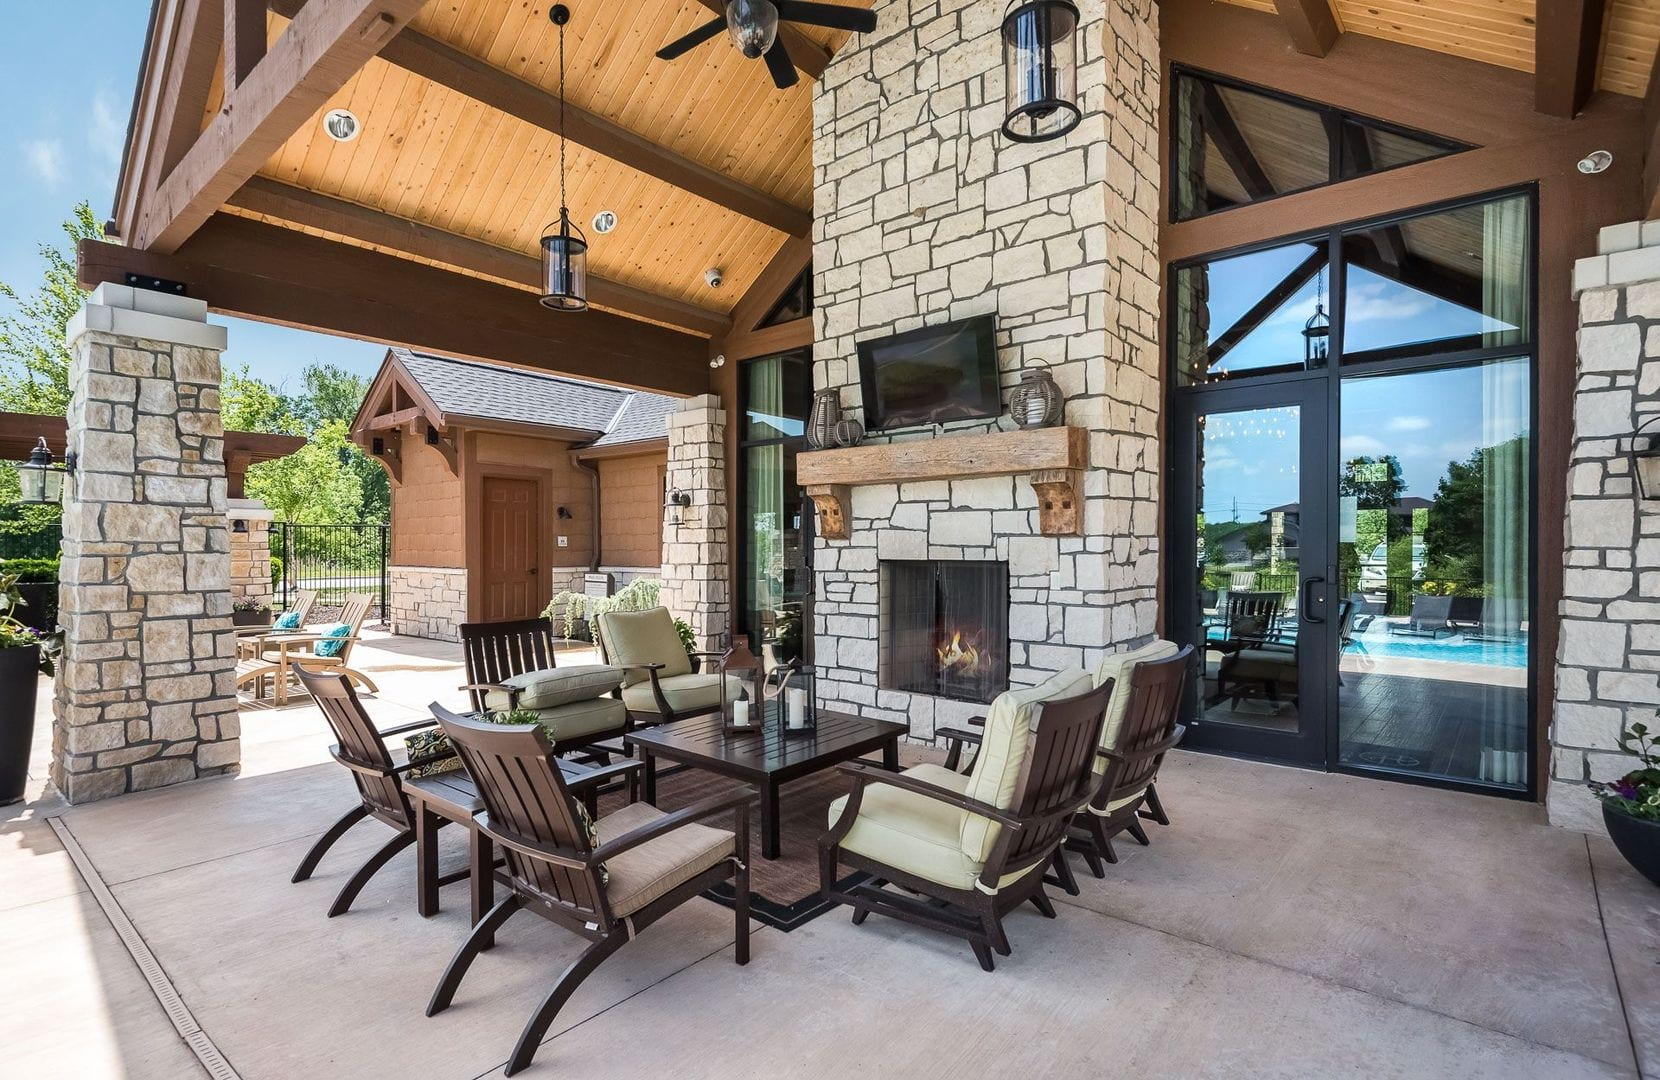 Luxury Apartments Overland Park Photo Gallery Of Highlands Lodge